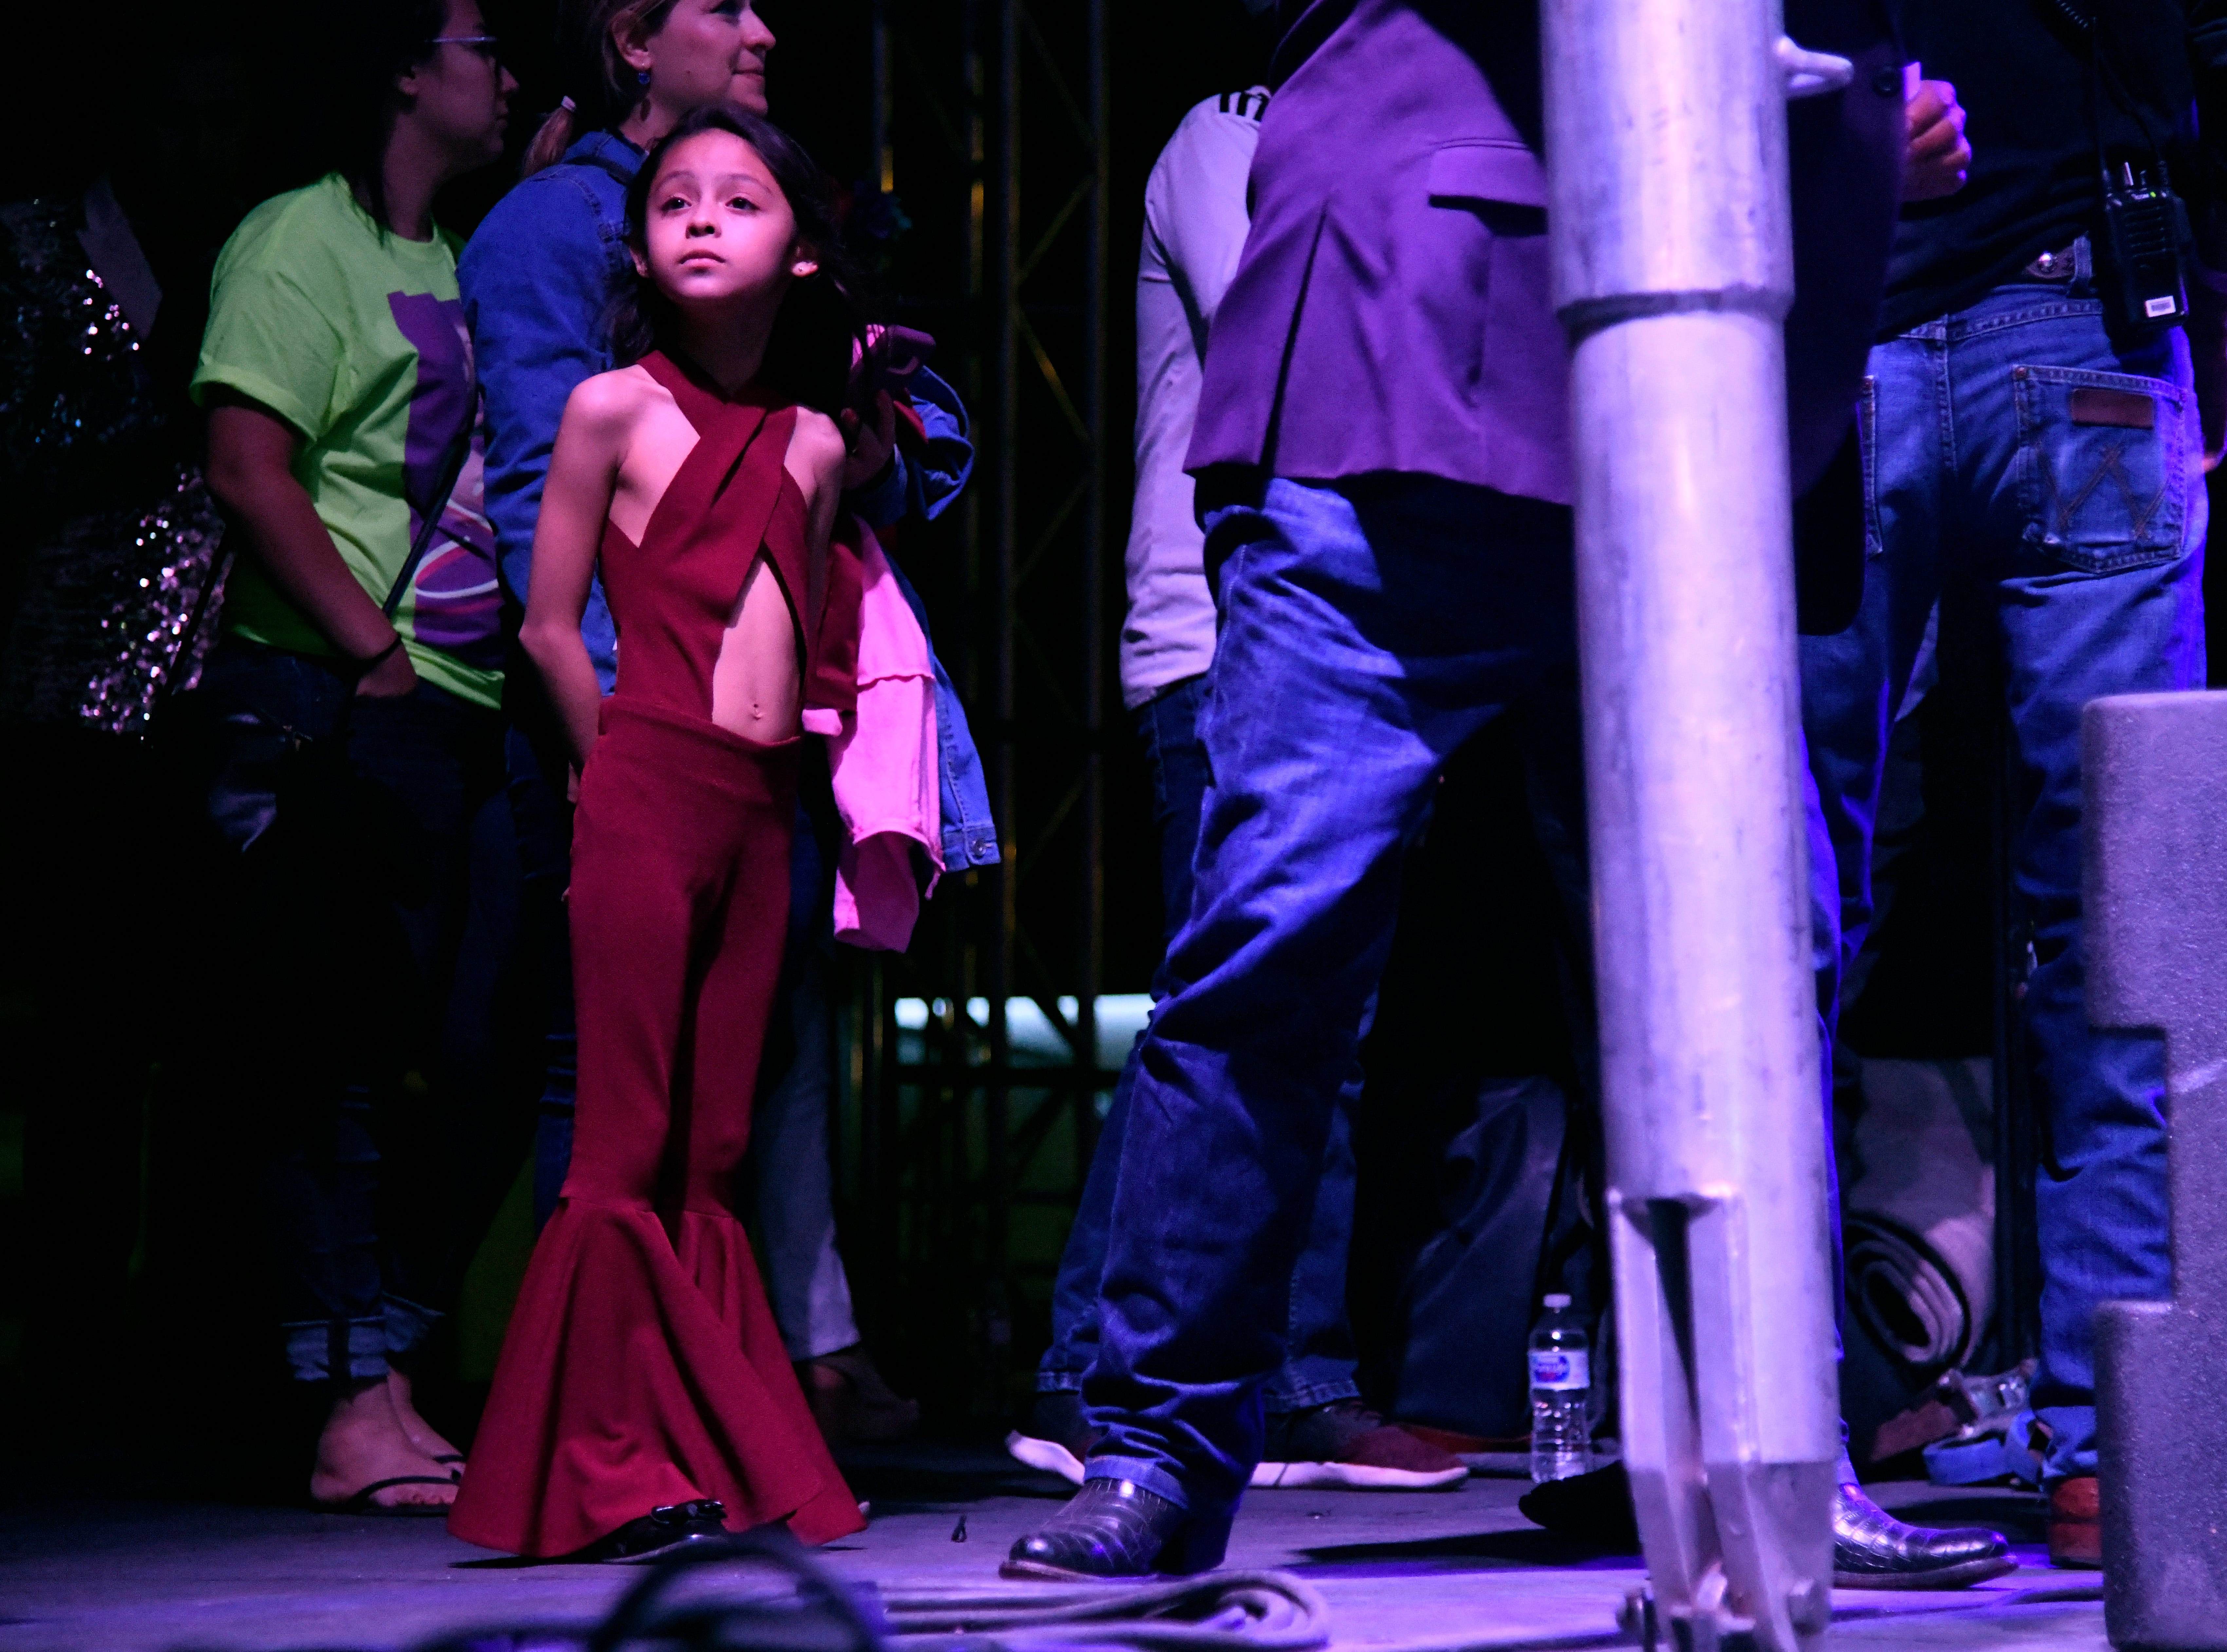 Images of Day Two of Fiesta de la Flor, Saturday, April 13, 2019, at the American Bank Center.